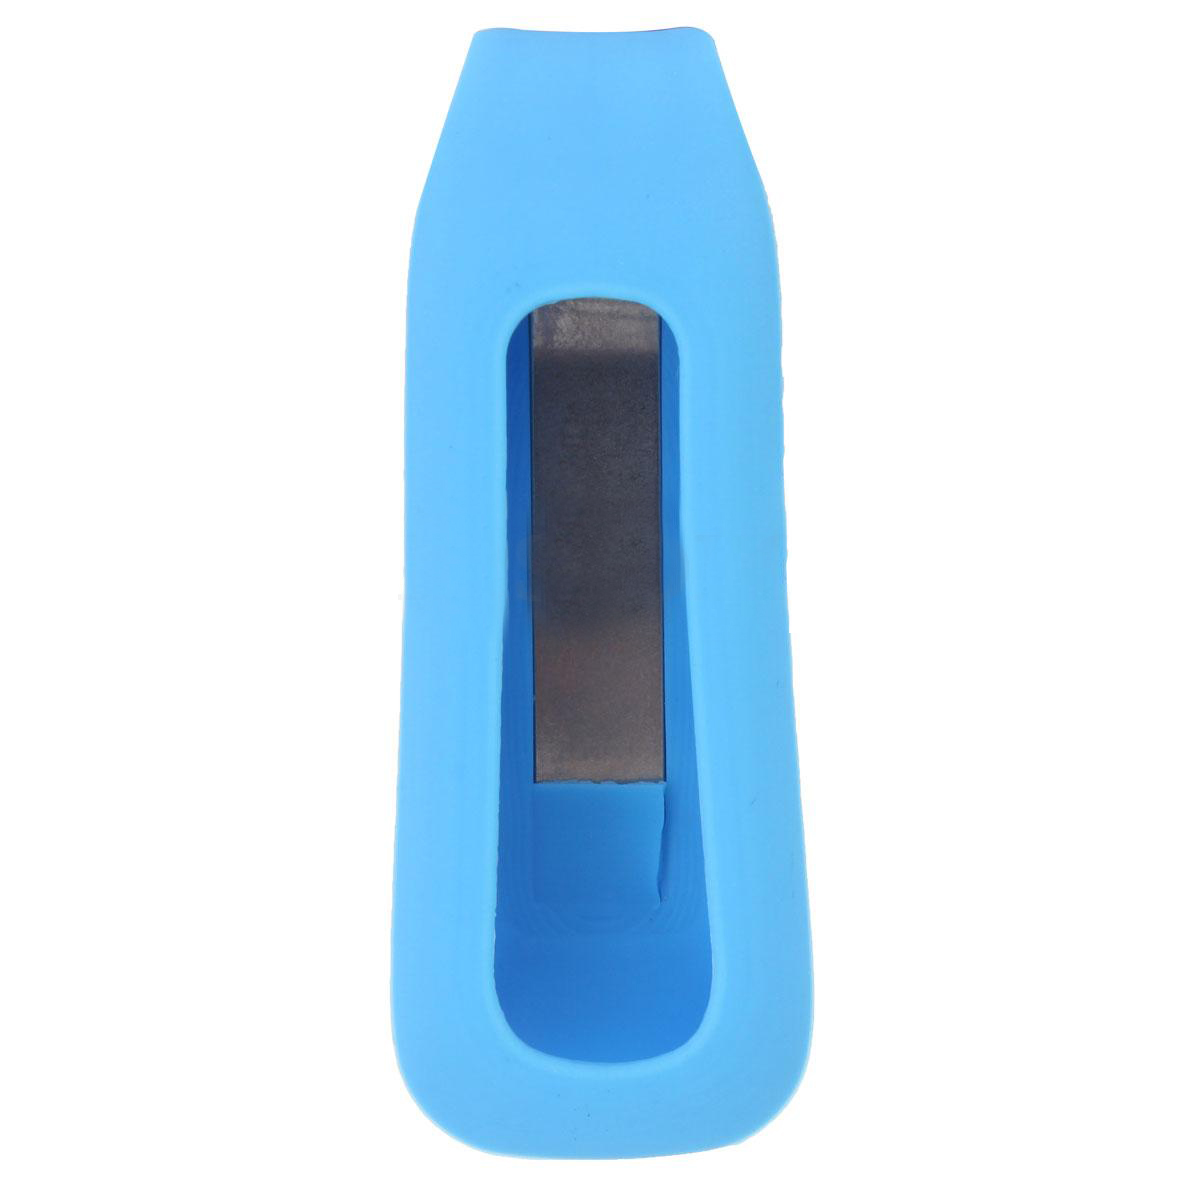 smart-devices-Silicone-Case-for-one-Black-N2P8